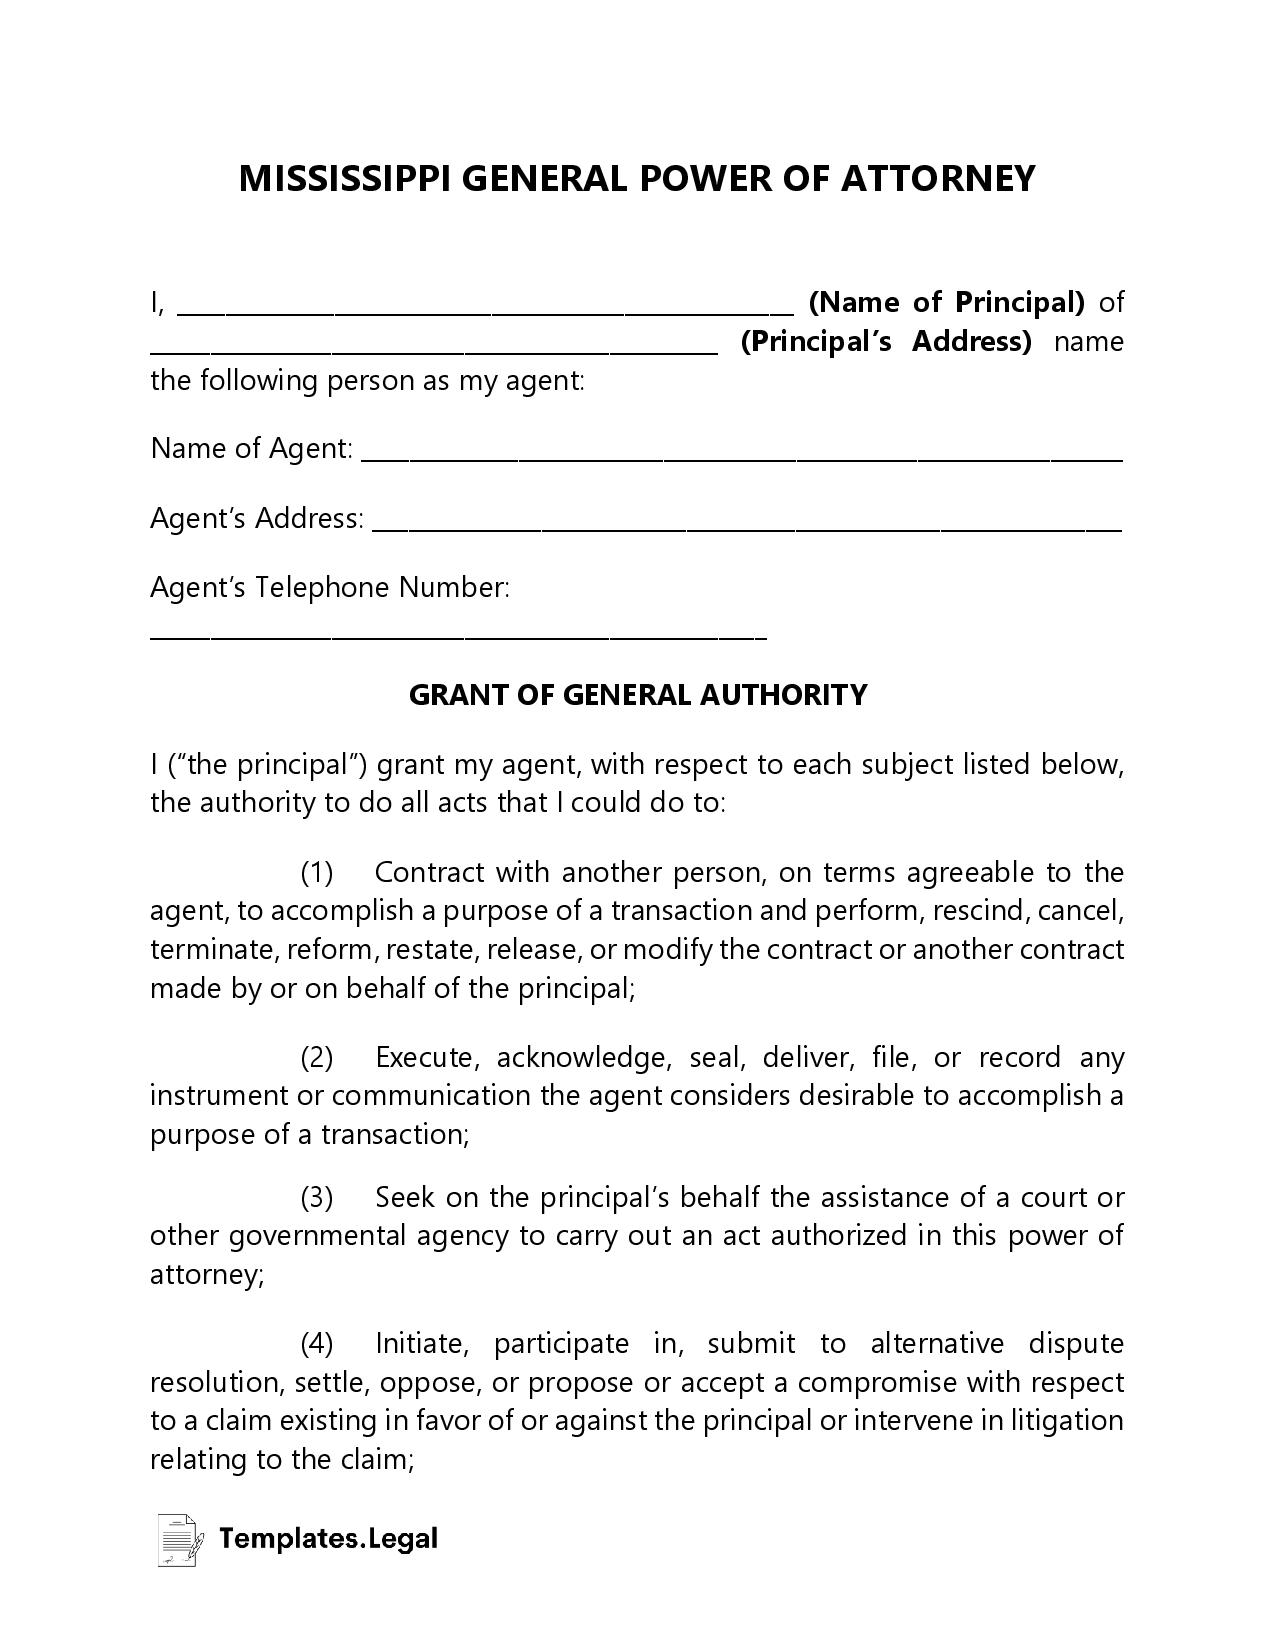 Mississippi General Power of Attorney - Templates.Legal